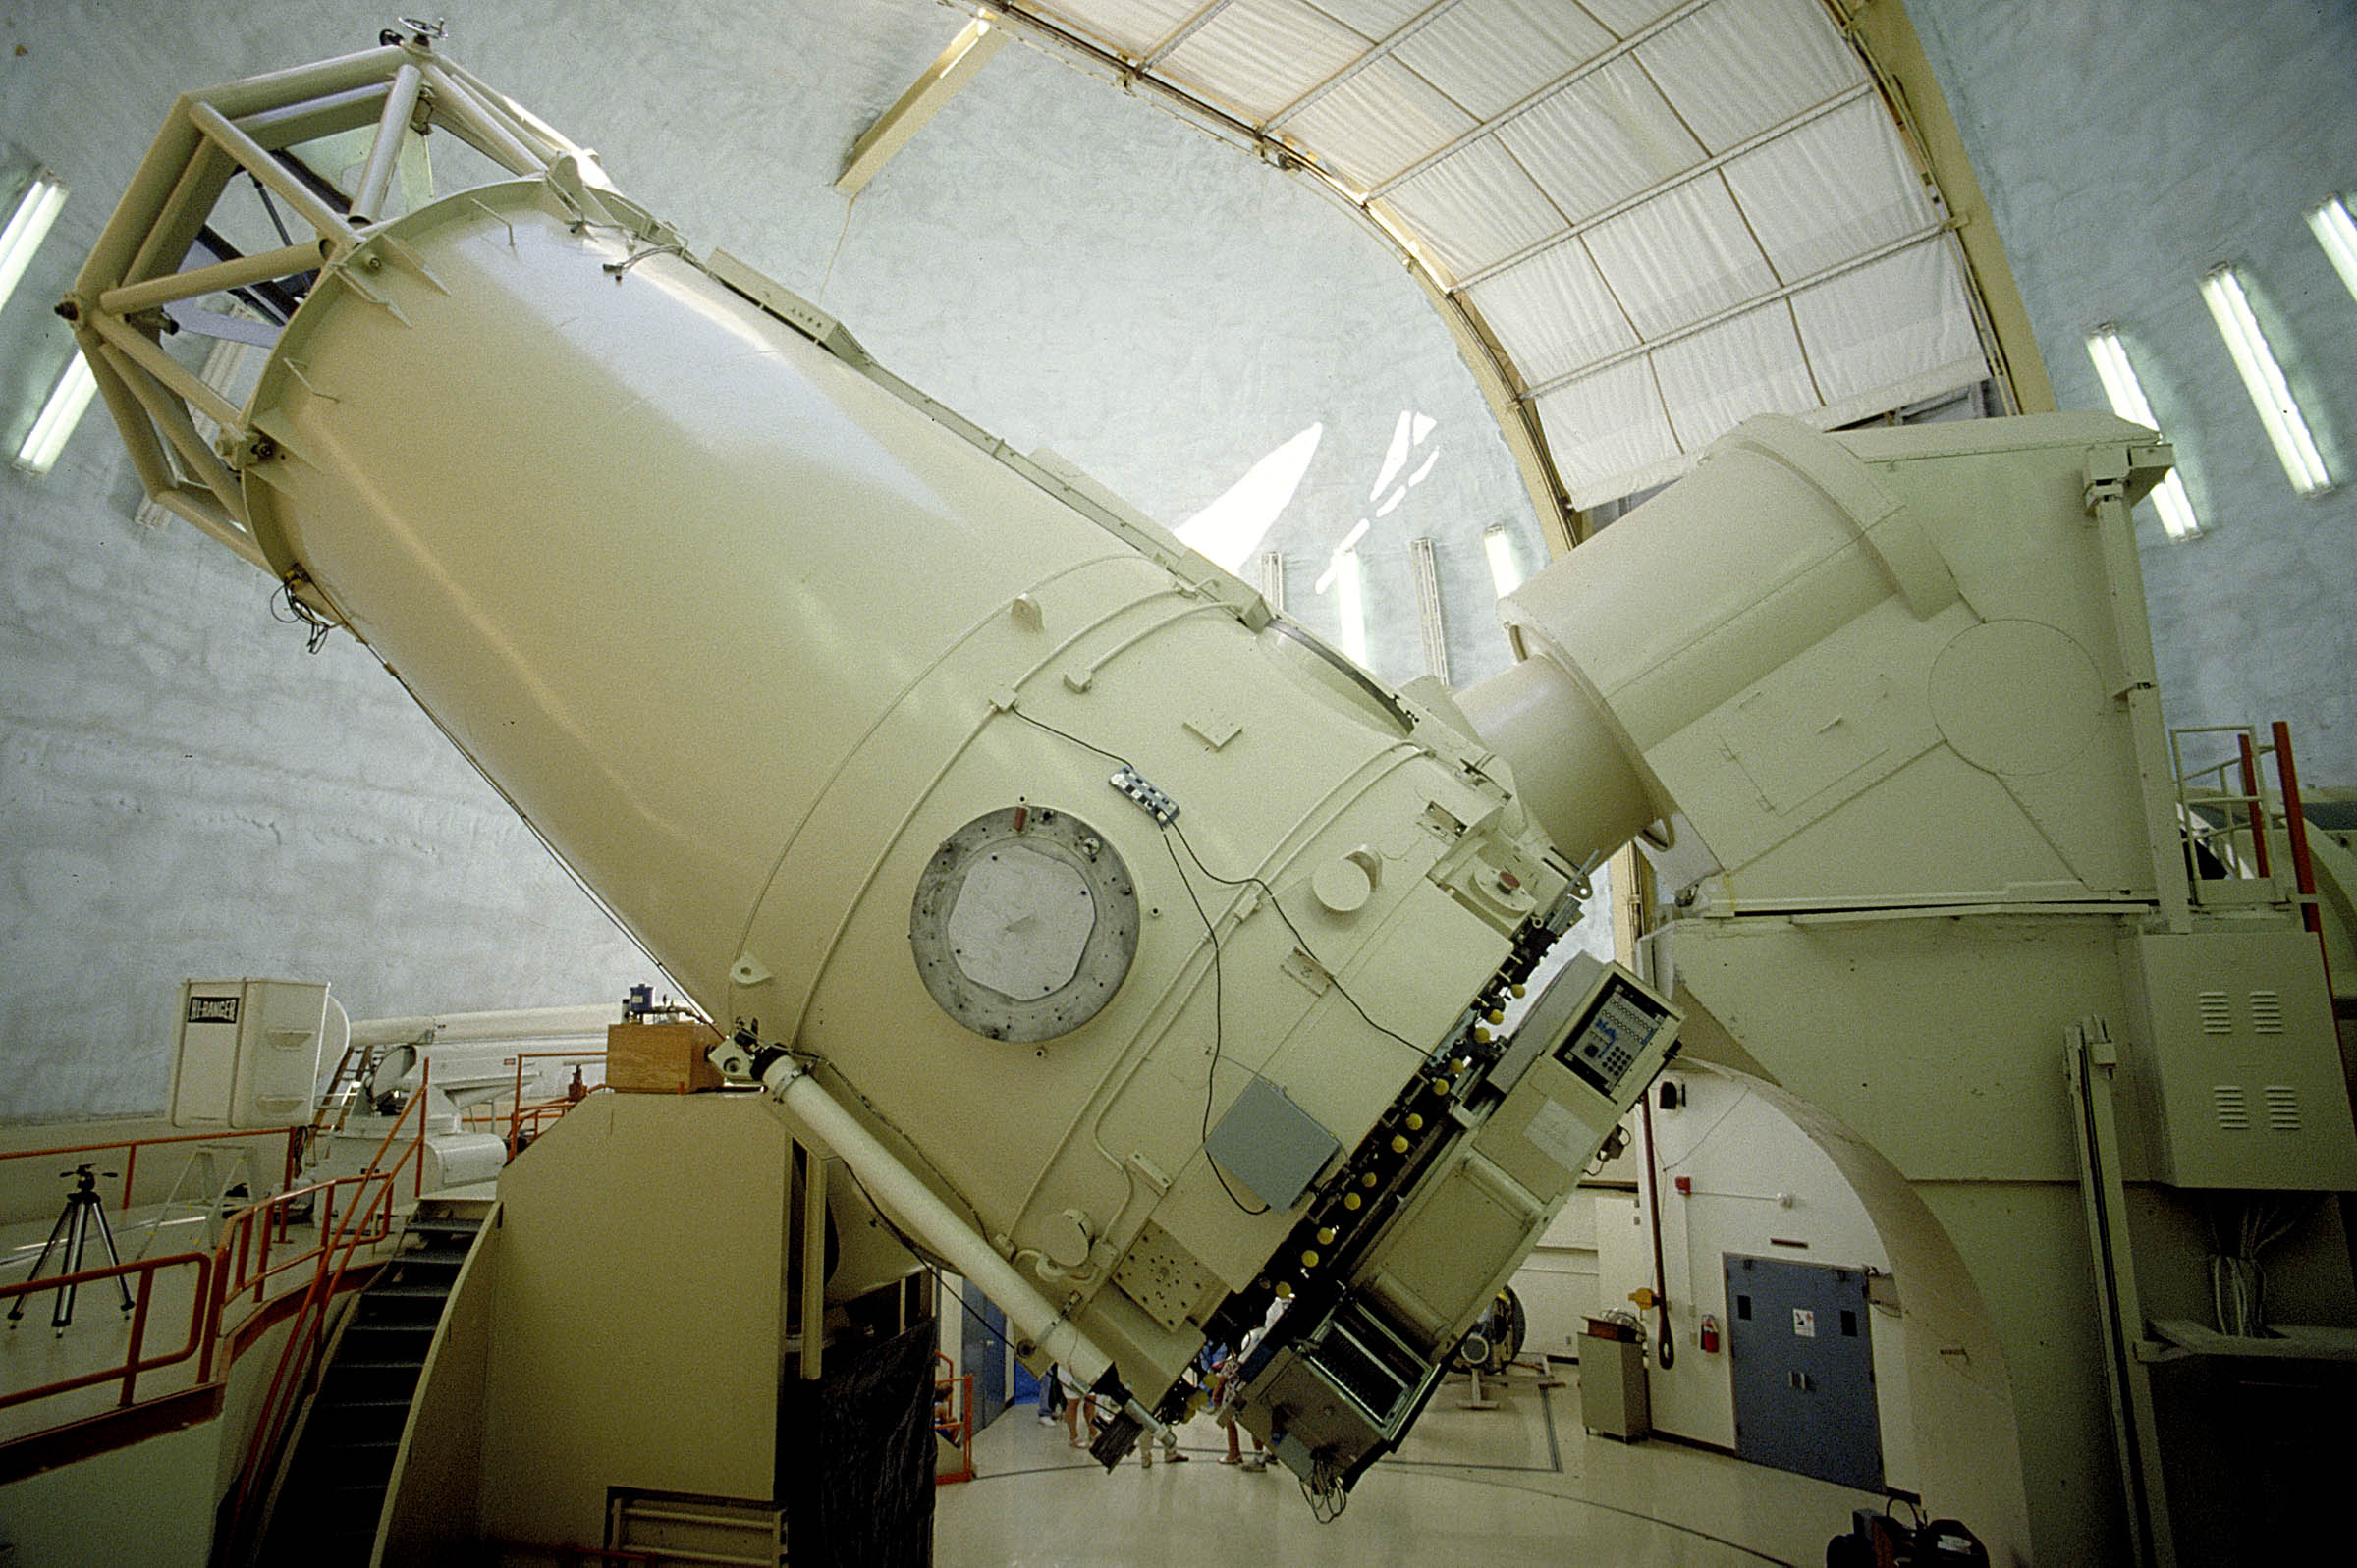 astronomy observatory with telescope - photo #22